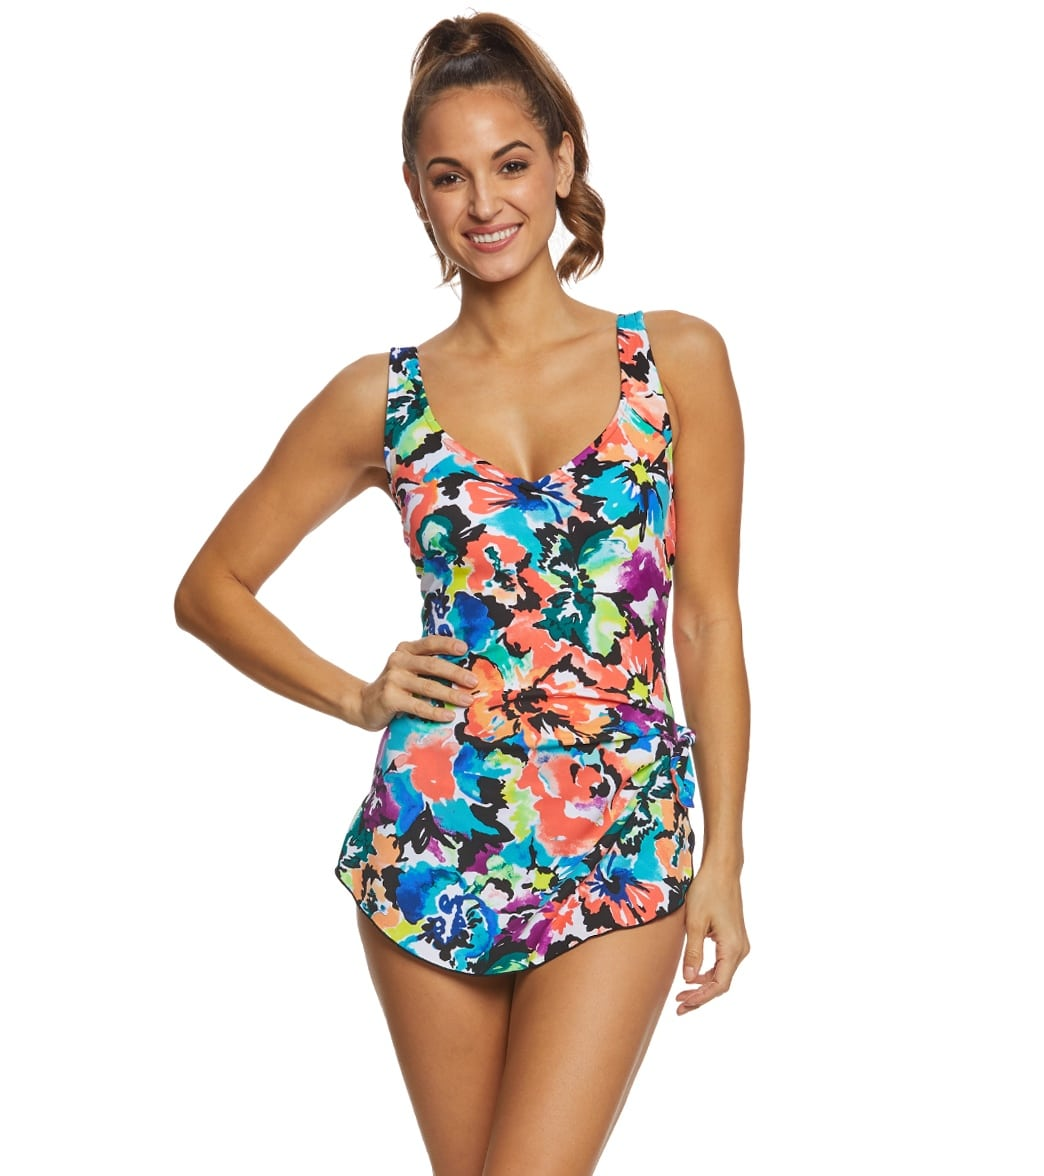 3cbafa0808 Maxine Blossom Spa Chlorine Resistant Sarong One Piece Swimsuit at  SwimOutlet.com - Free Shipping